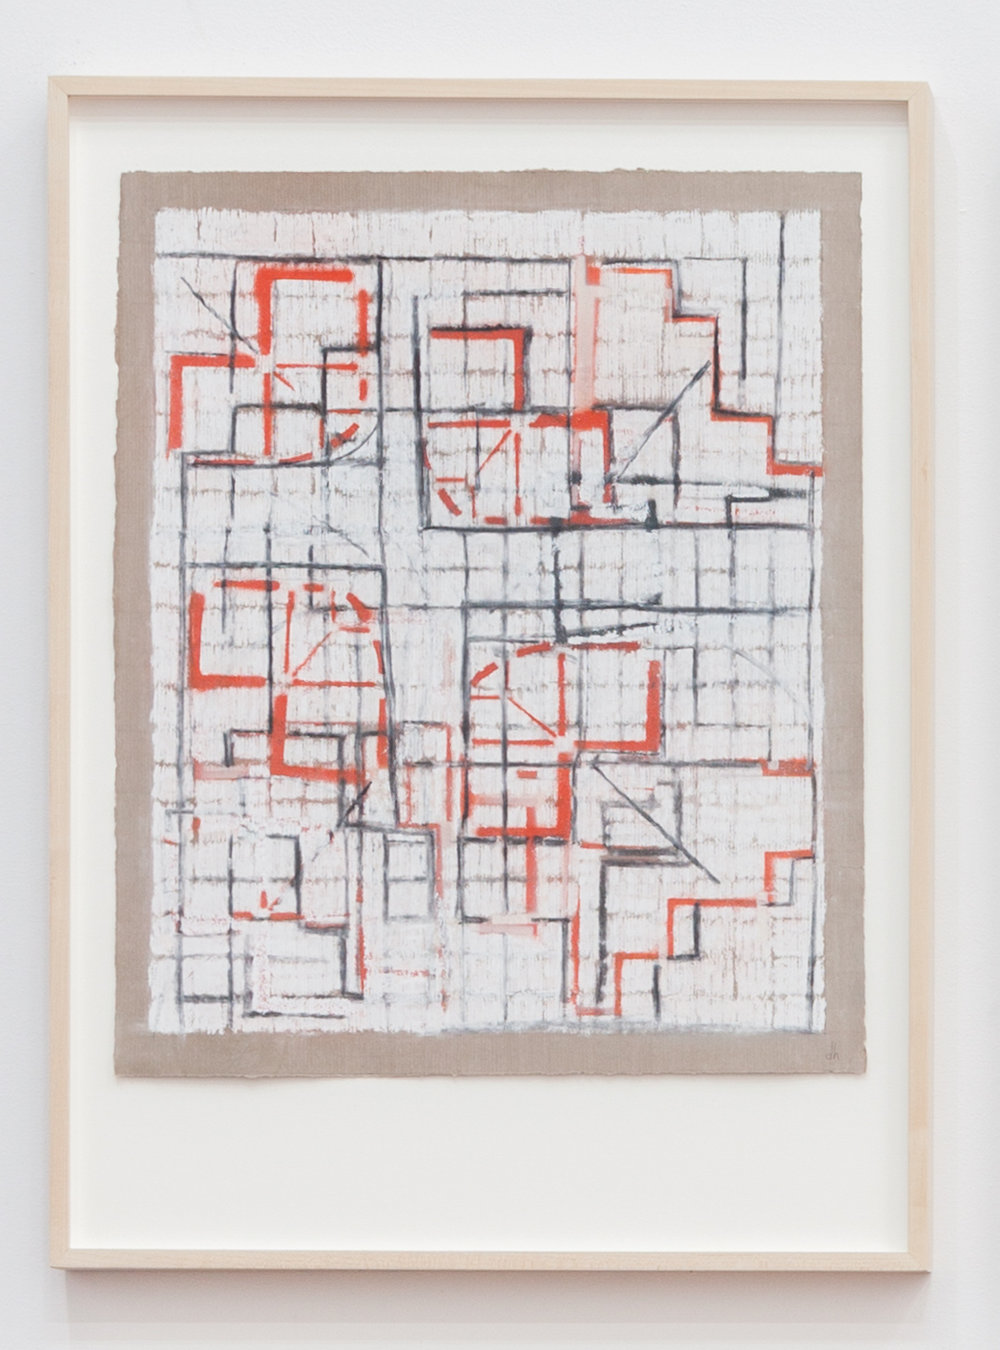 Deborah Hede,  Curb Schematic , 2010, graphite, charcoal, pastel and enamel paint on paper, 26 × 19 in